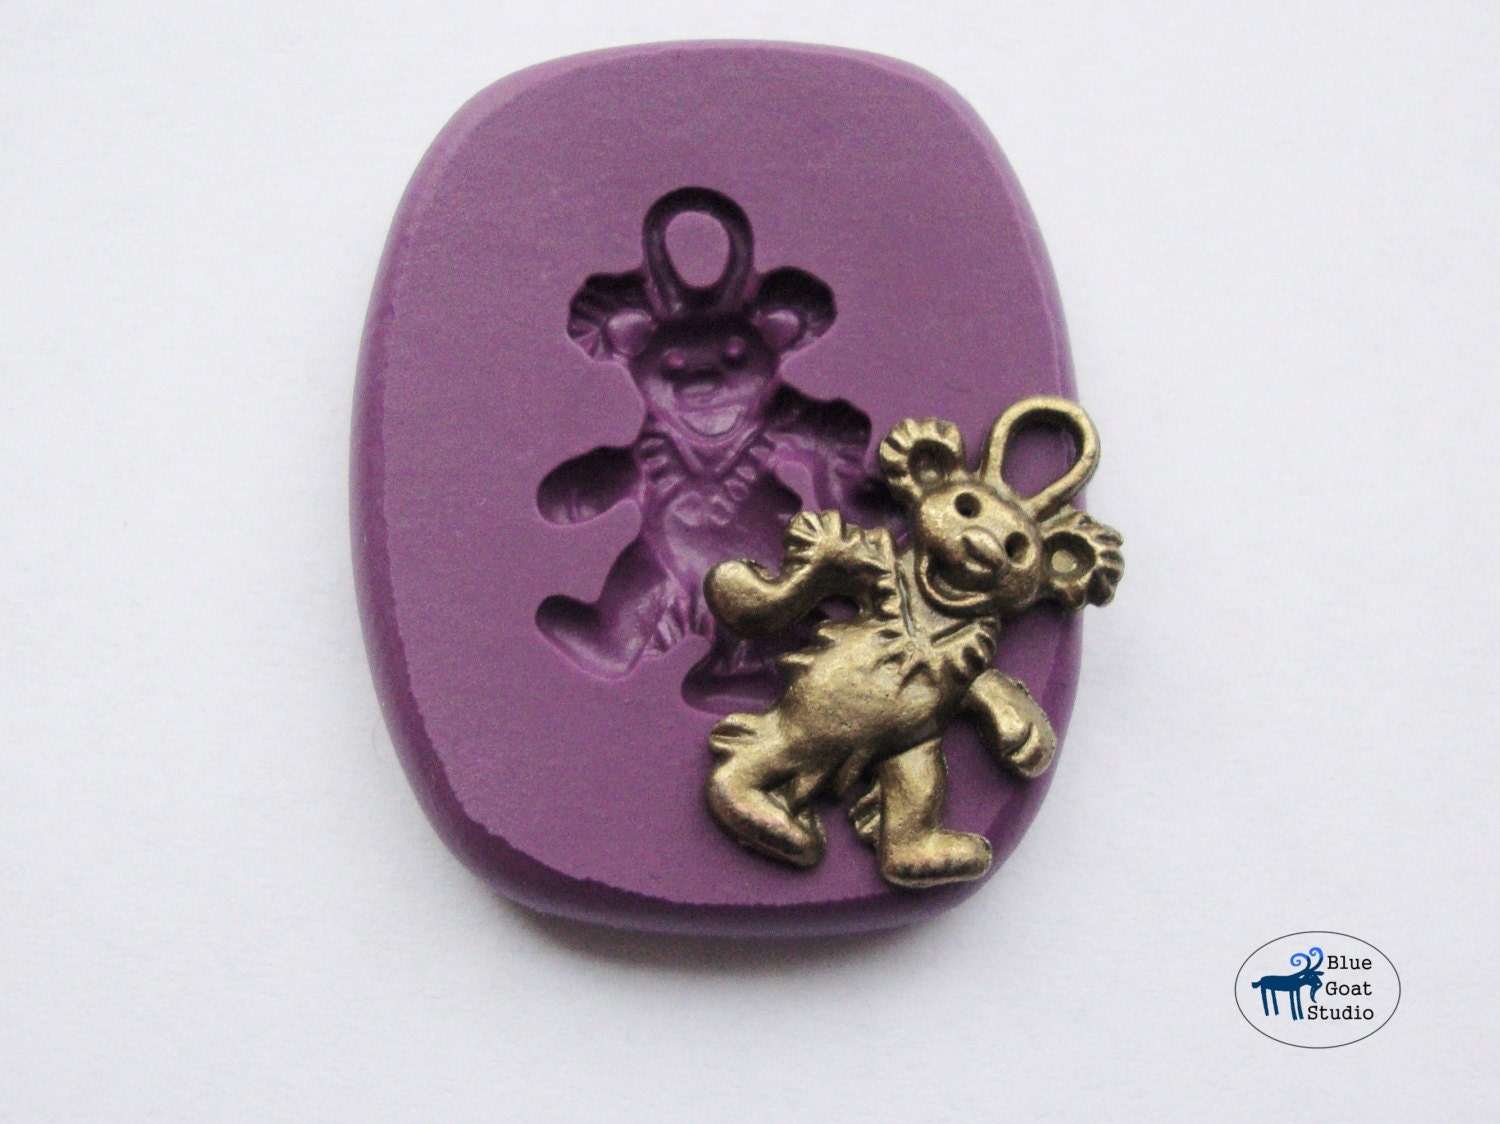 Dancing Bear Charm Mold  Grateful Dead Mold  Minimold Silicone Molds   Polymer Clay